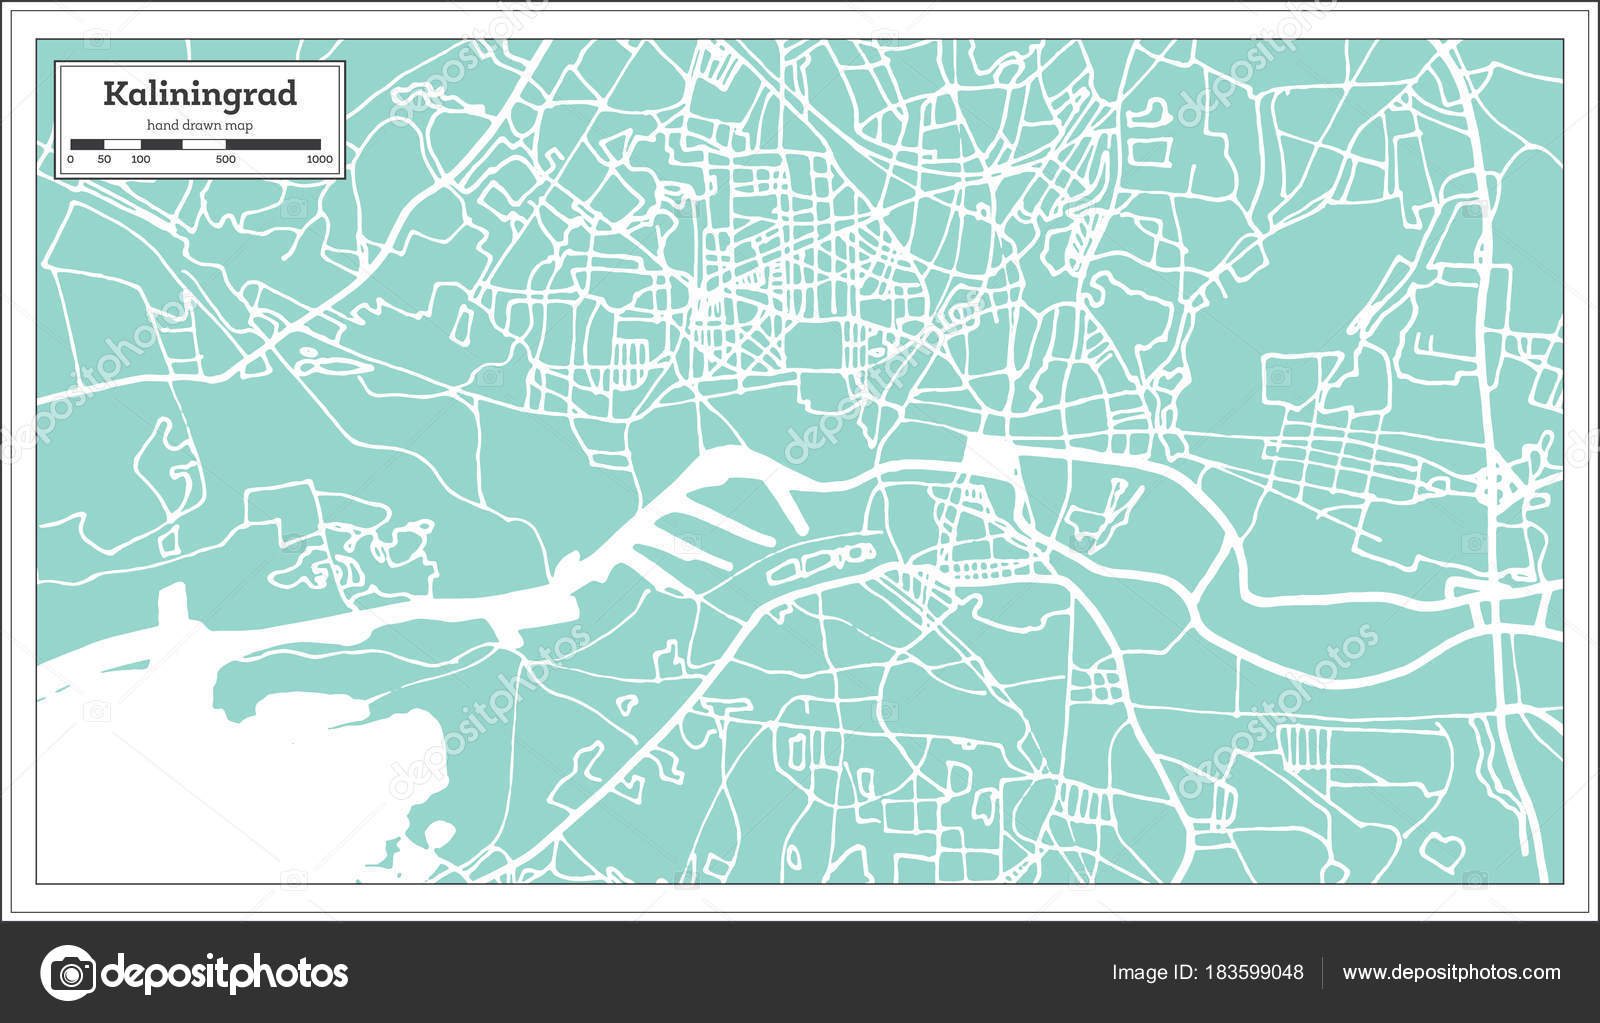 Kaliningrad Russia City Map In Retro Style Outline Map Stock